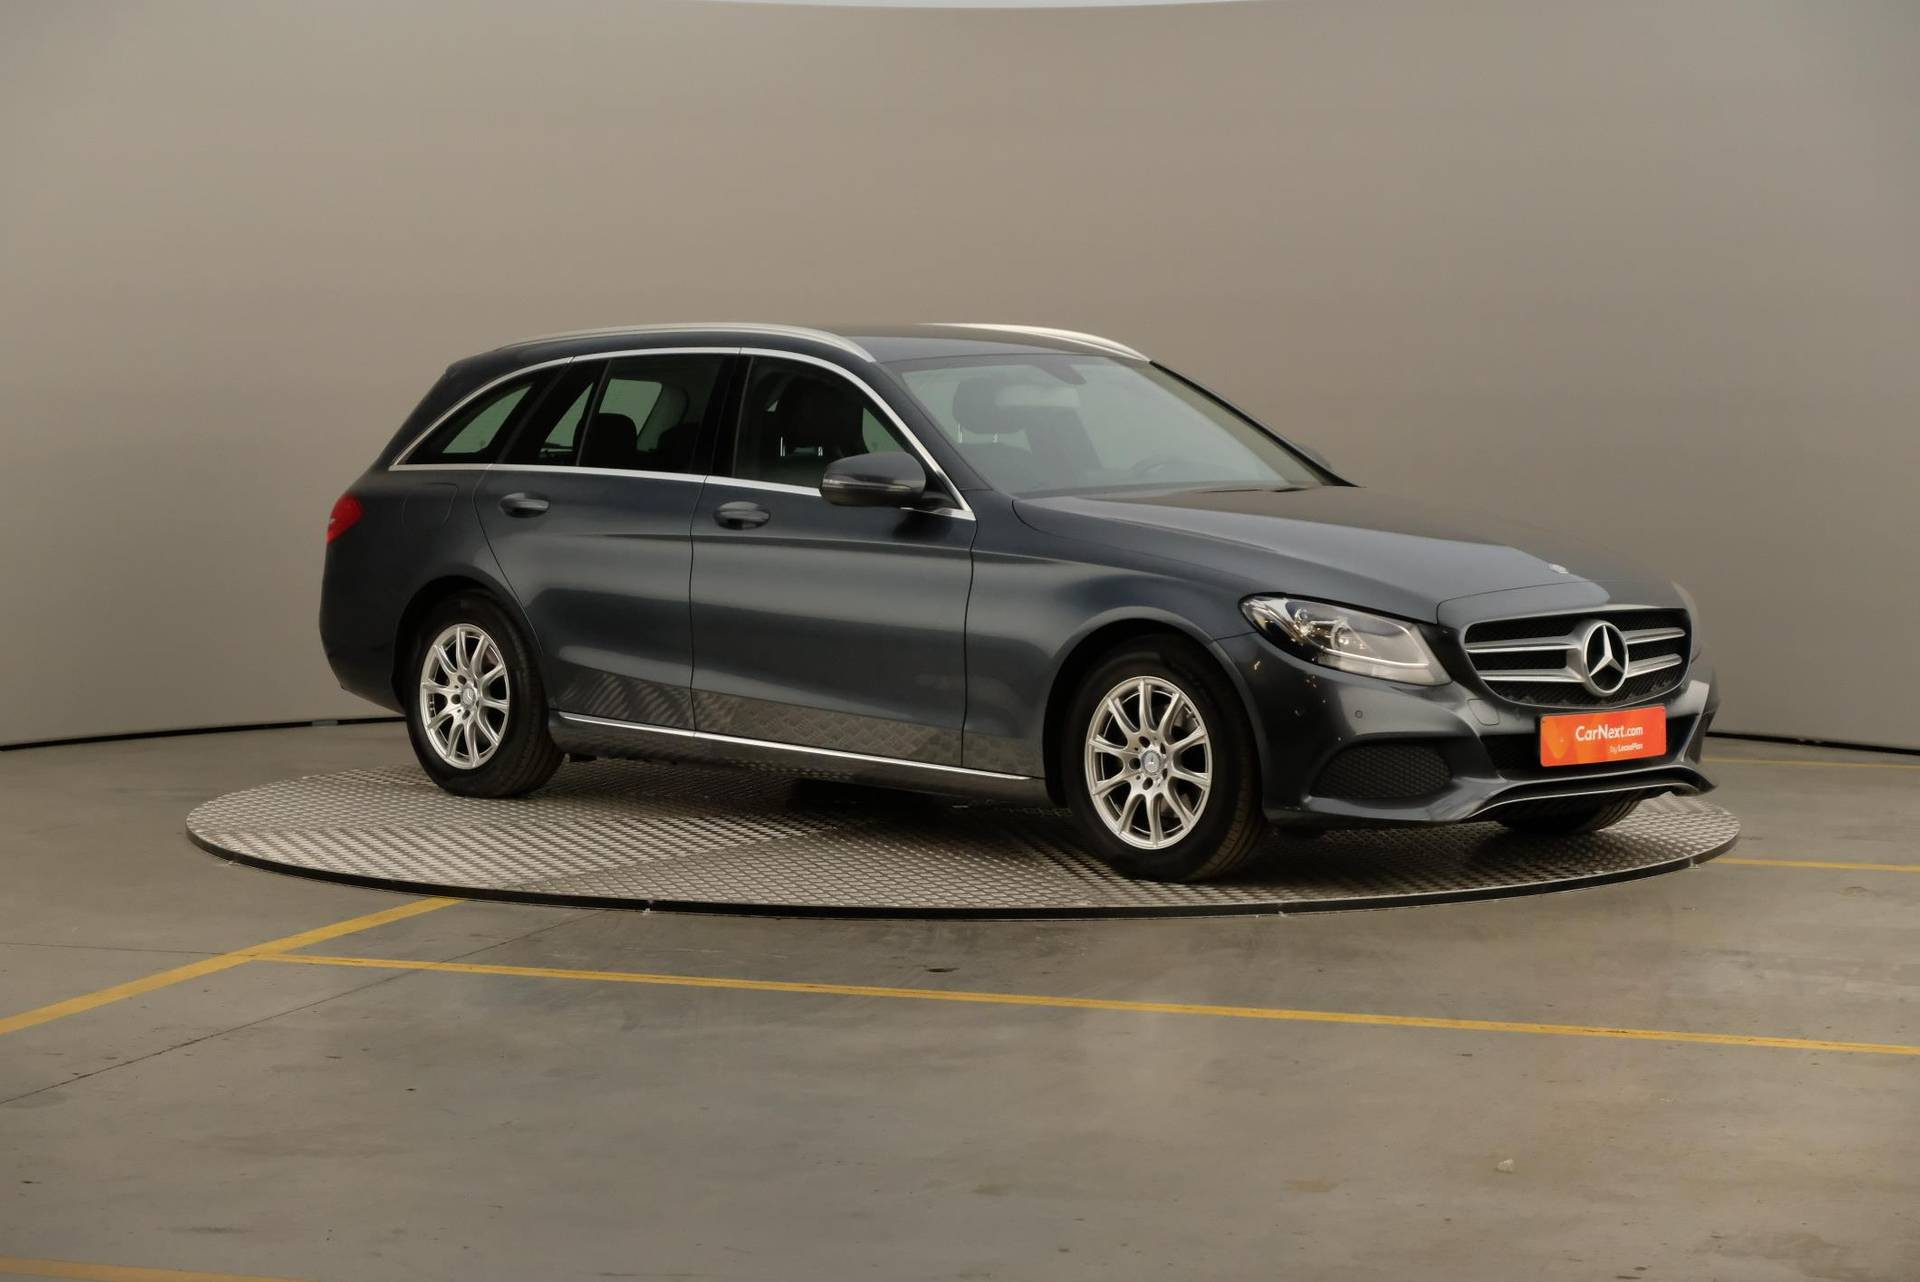 Mercedes-Benz C-Klasse 180 d PACK AVANTGARDE PACK EASY GPS PDC TREKHAAK EURO 6.., 360-image27